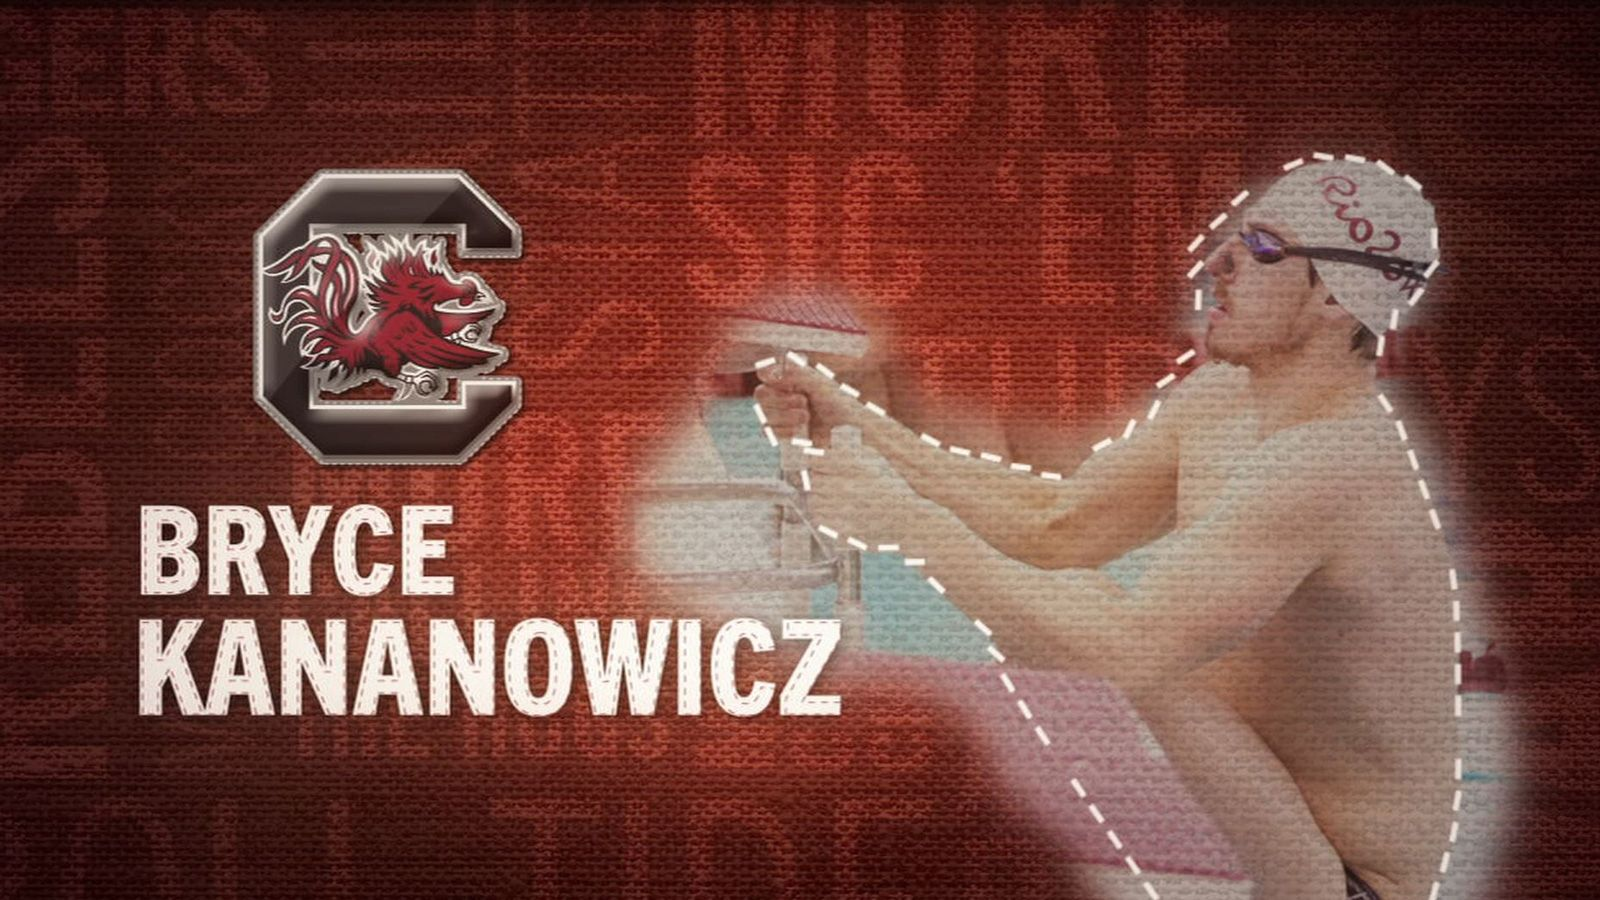 I am the SEC: South Carolina's Bryce Kananowicz